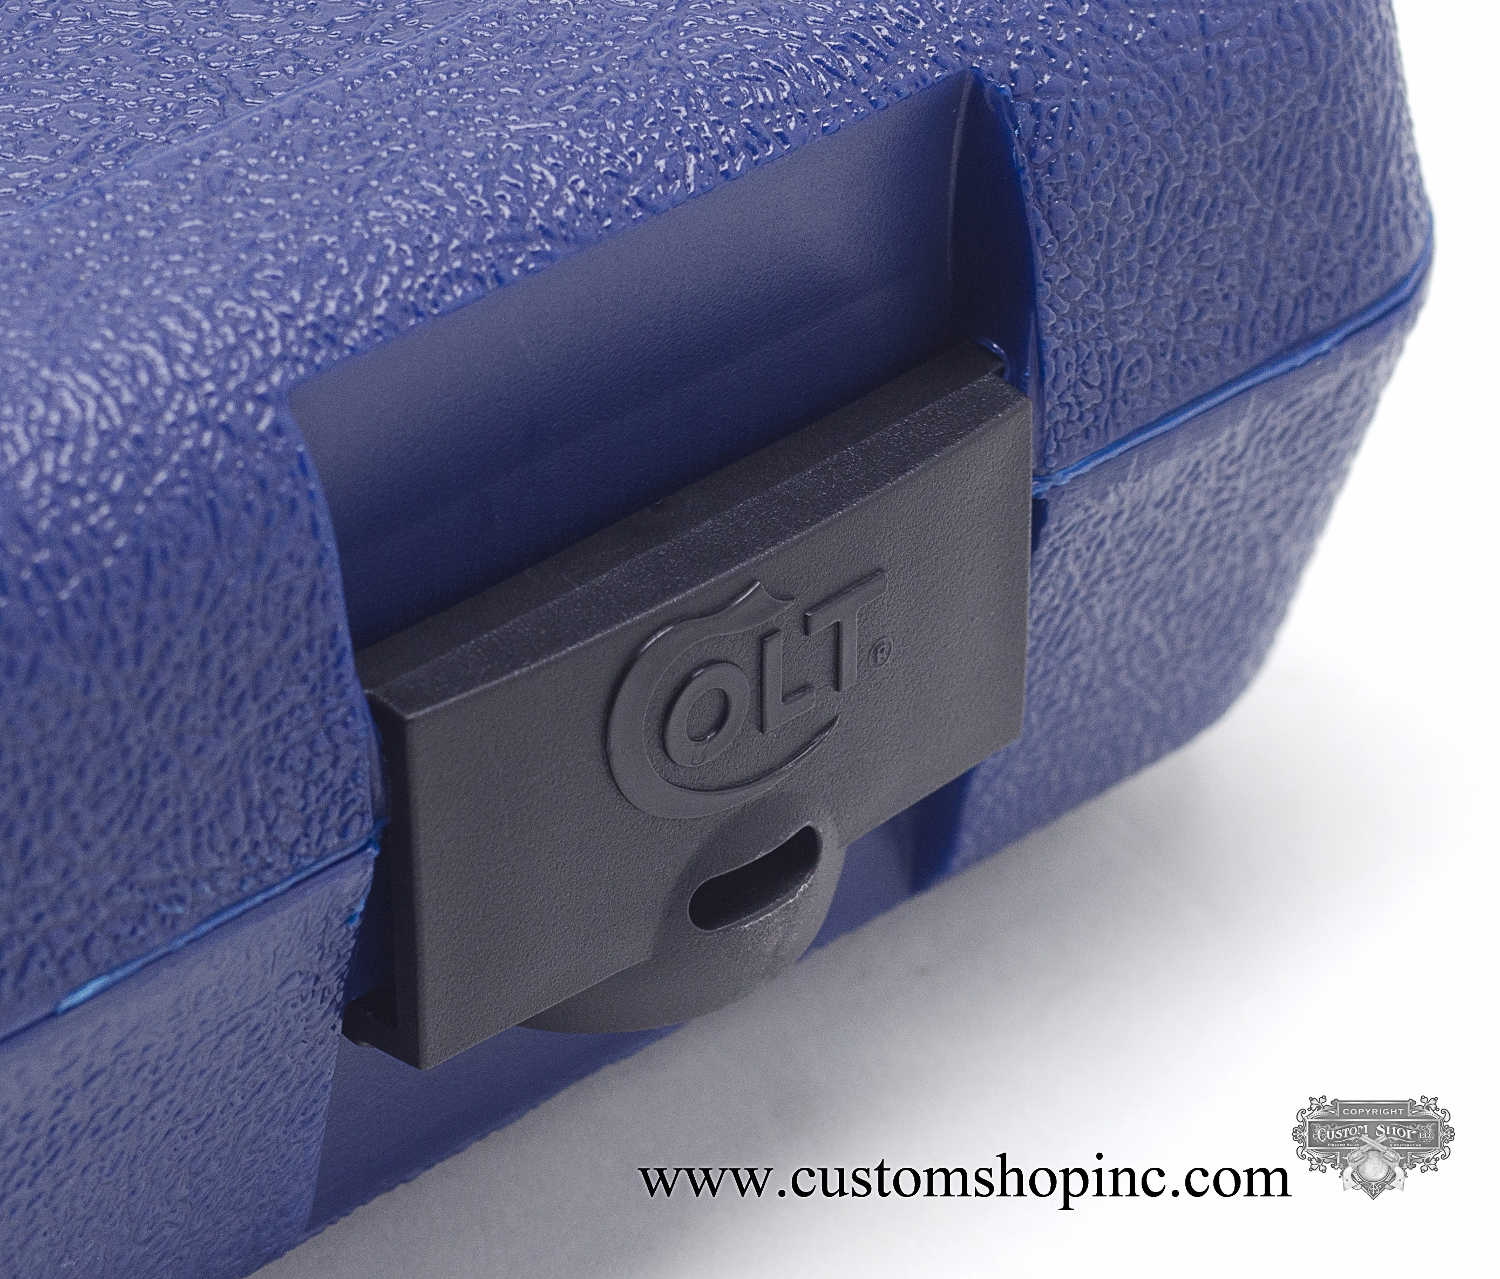 colt blue hard case custom shop inc